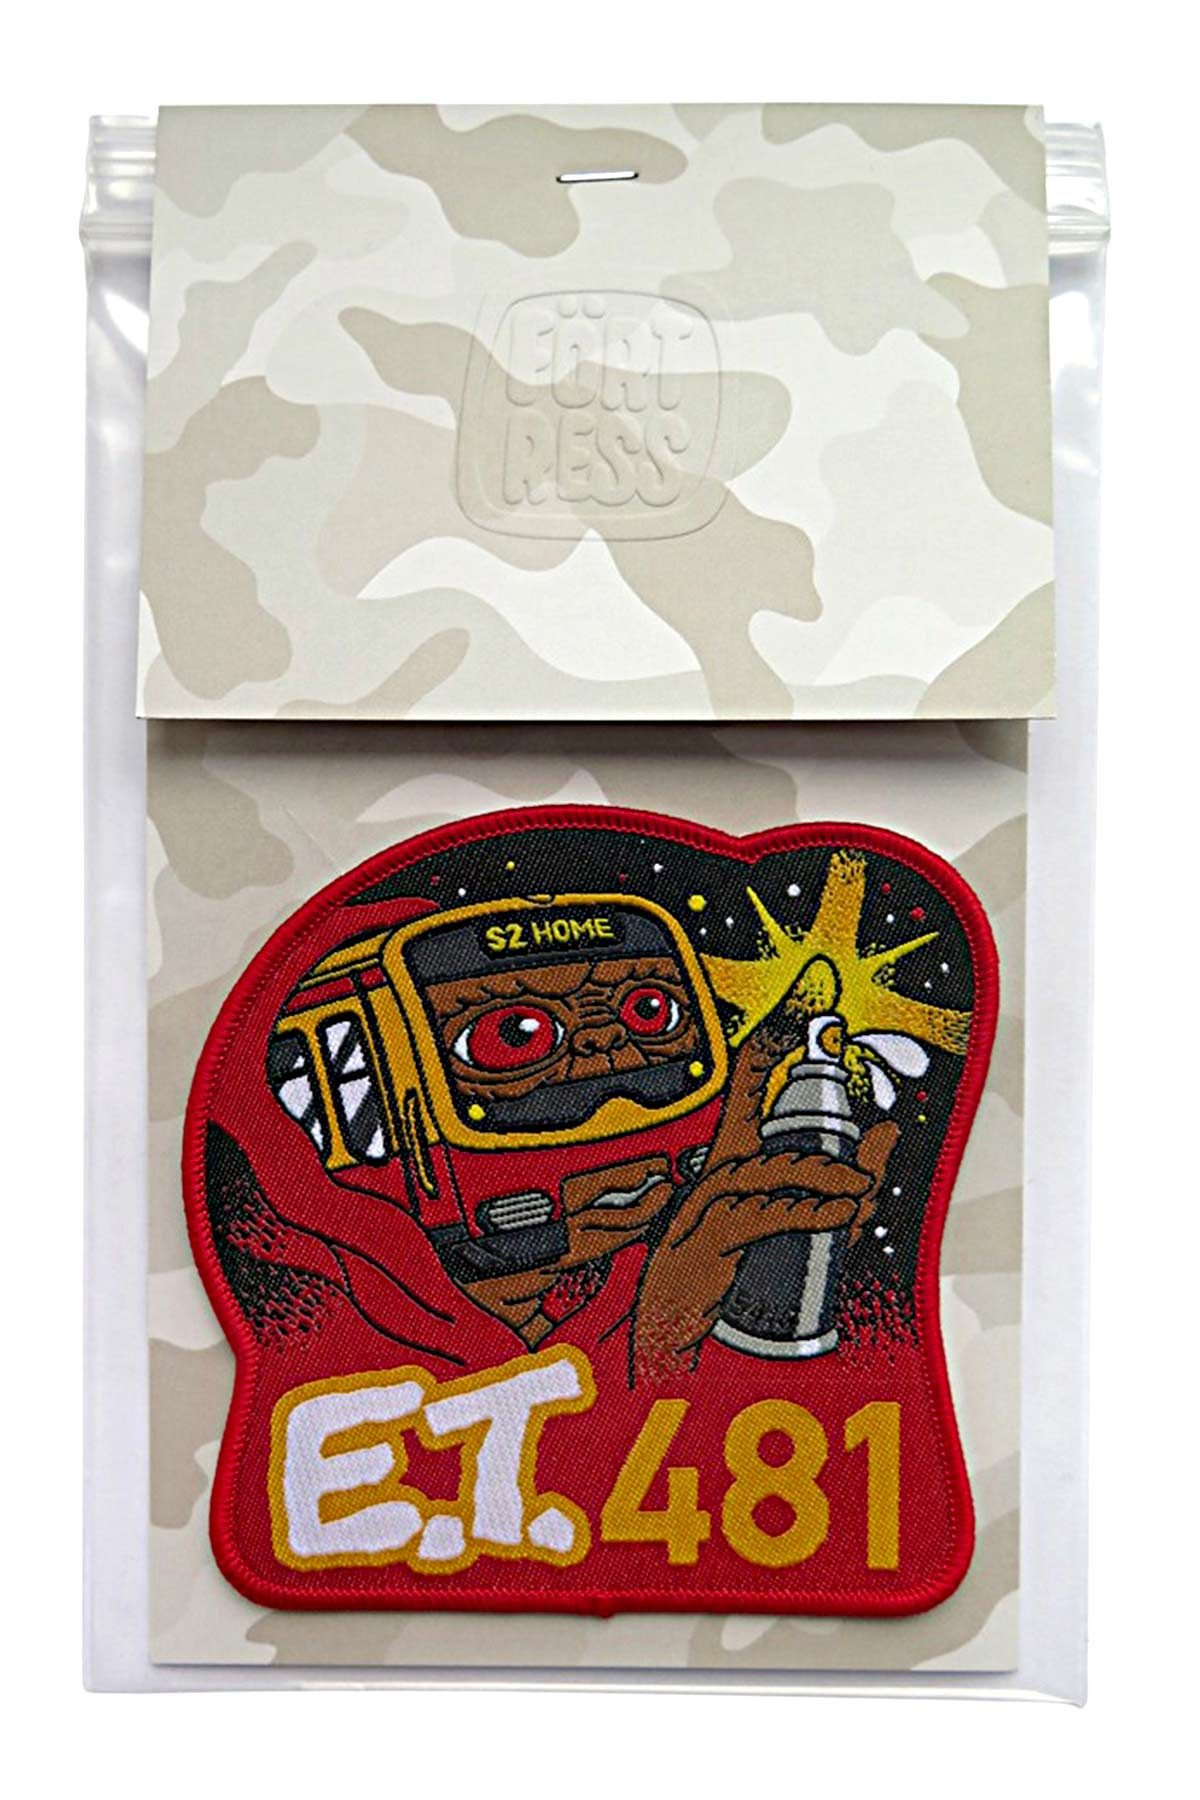 Flying Fortress E.T.481 Patch